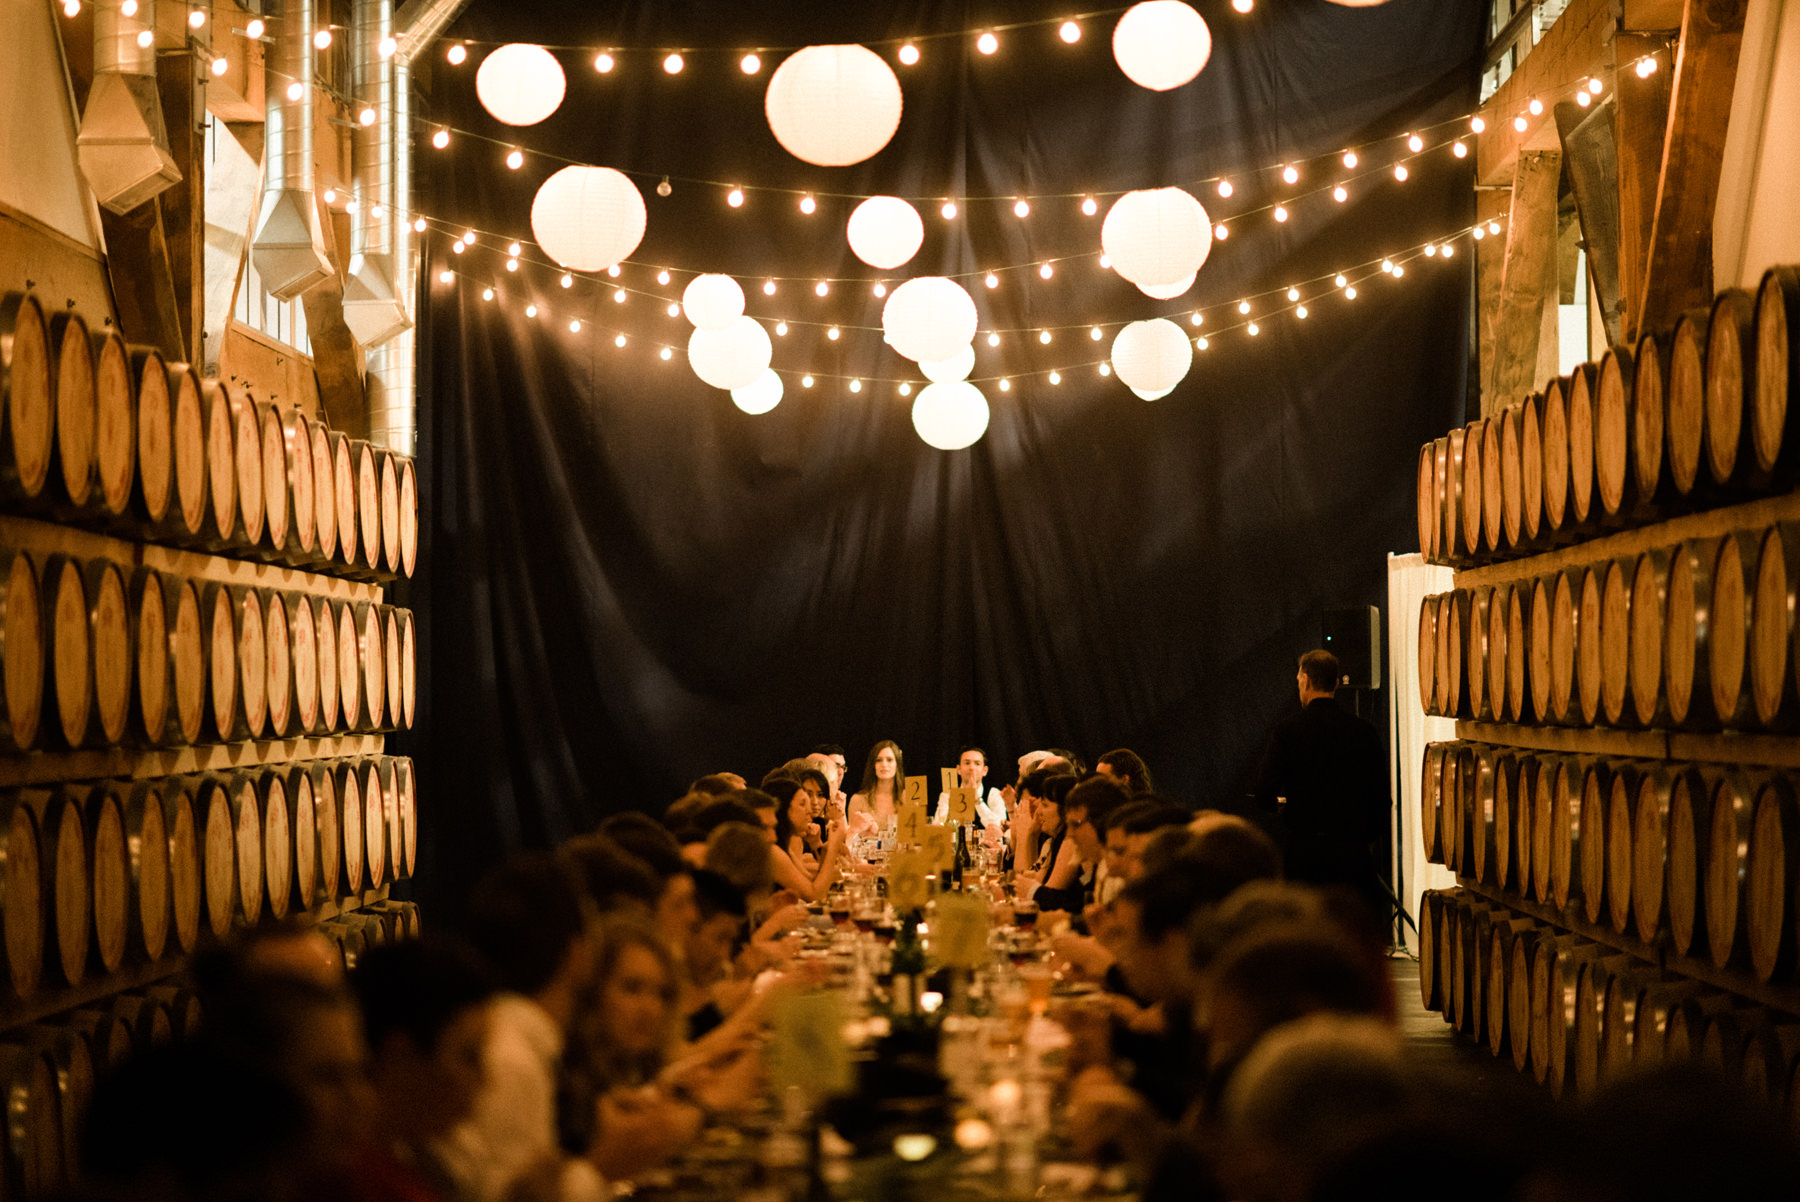 067-long-table-wedding-dinner-under-string-lights-at-westland-distillery.jpg